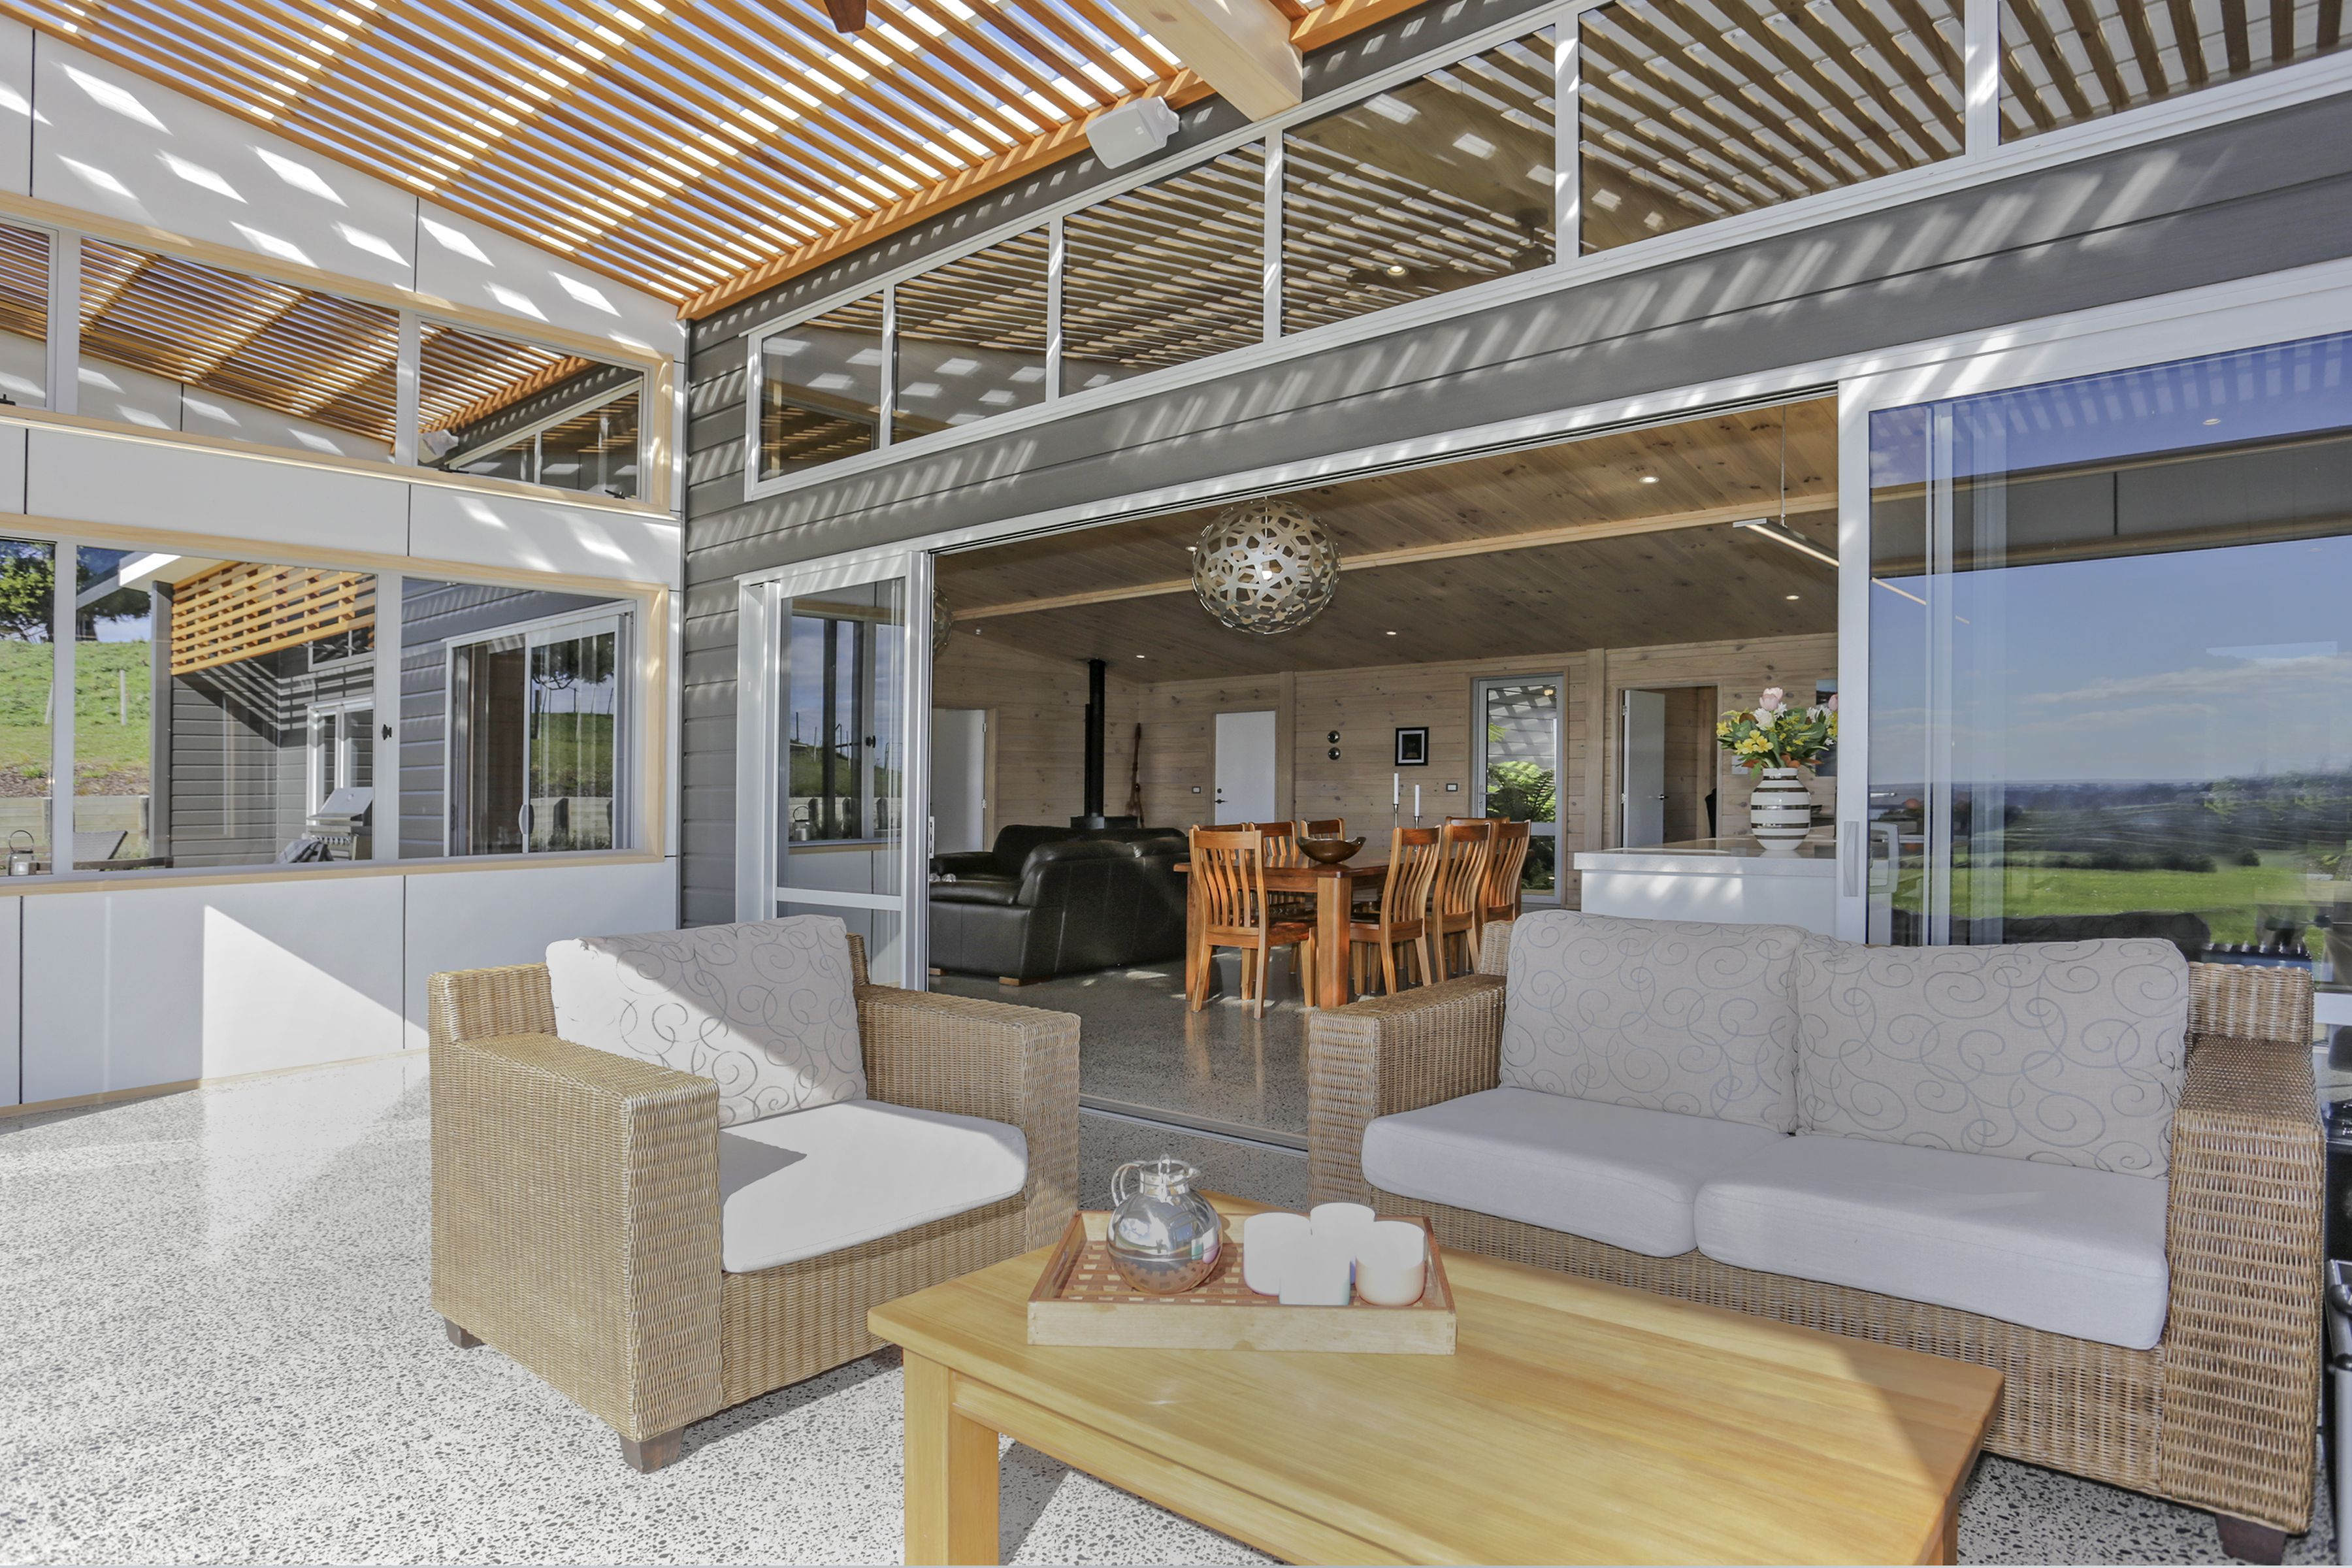 Indoor / outdoor living at its best! (With images) | New ... on Bespoke Outdoor Living id=80681